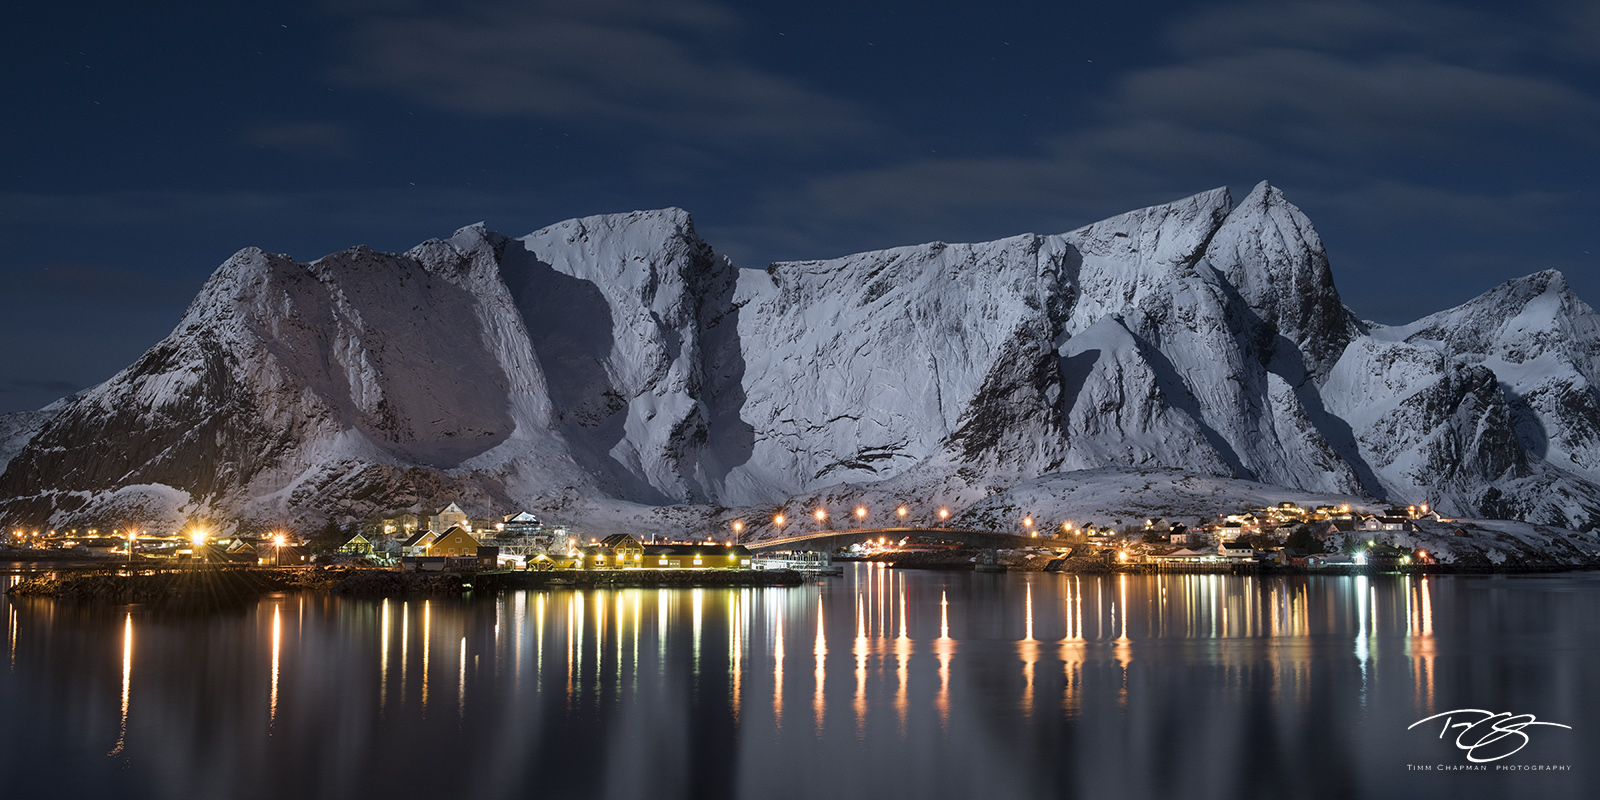 panorama, norway, gallery, lofoten, sakrisoya, sakrisoy, Hamnøy, Sakrisøya, full moon, moonlight, reinebringen, fishing village, Sakrisøya Rorbuer, night light, night, long exposure, island, tranquil,, photo